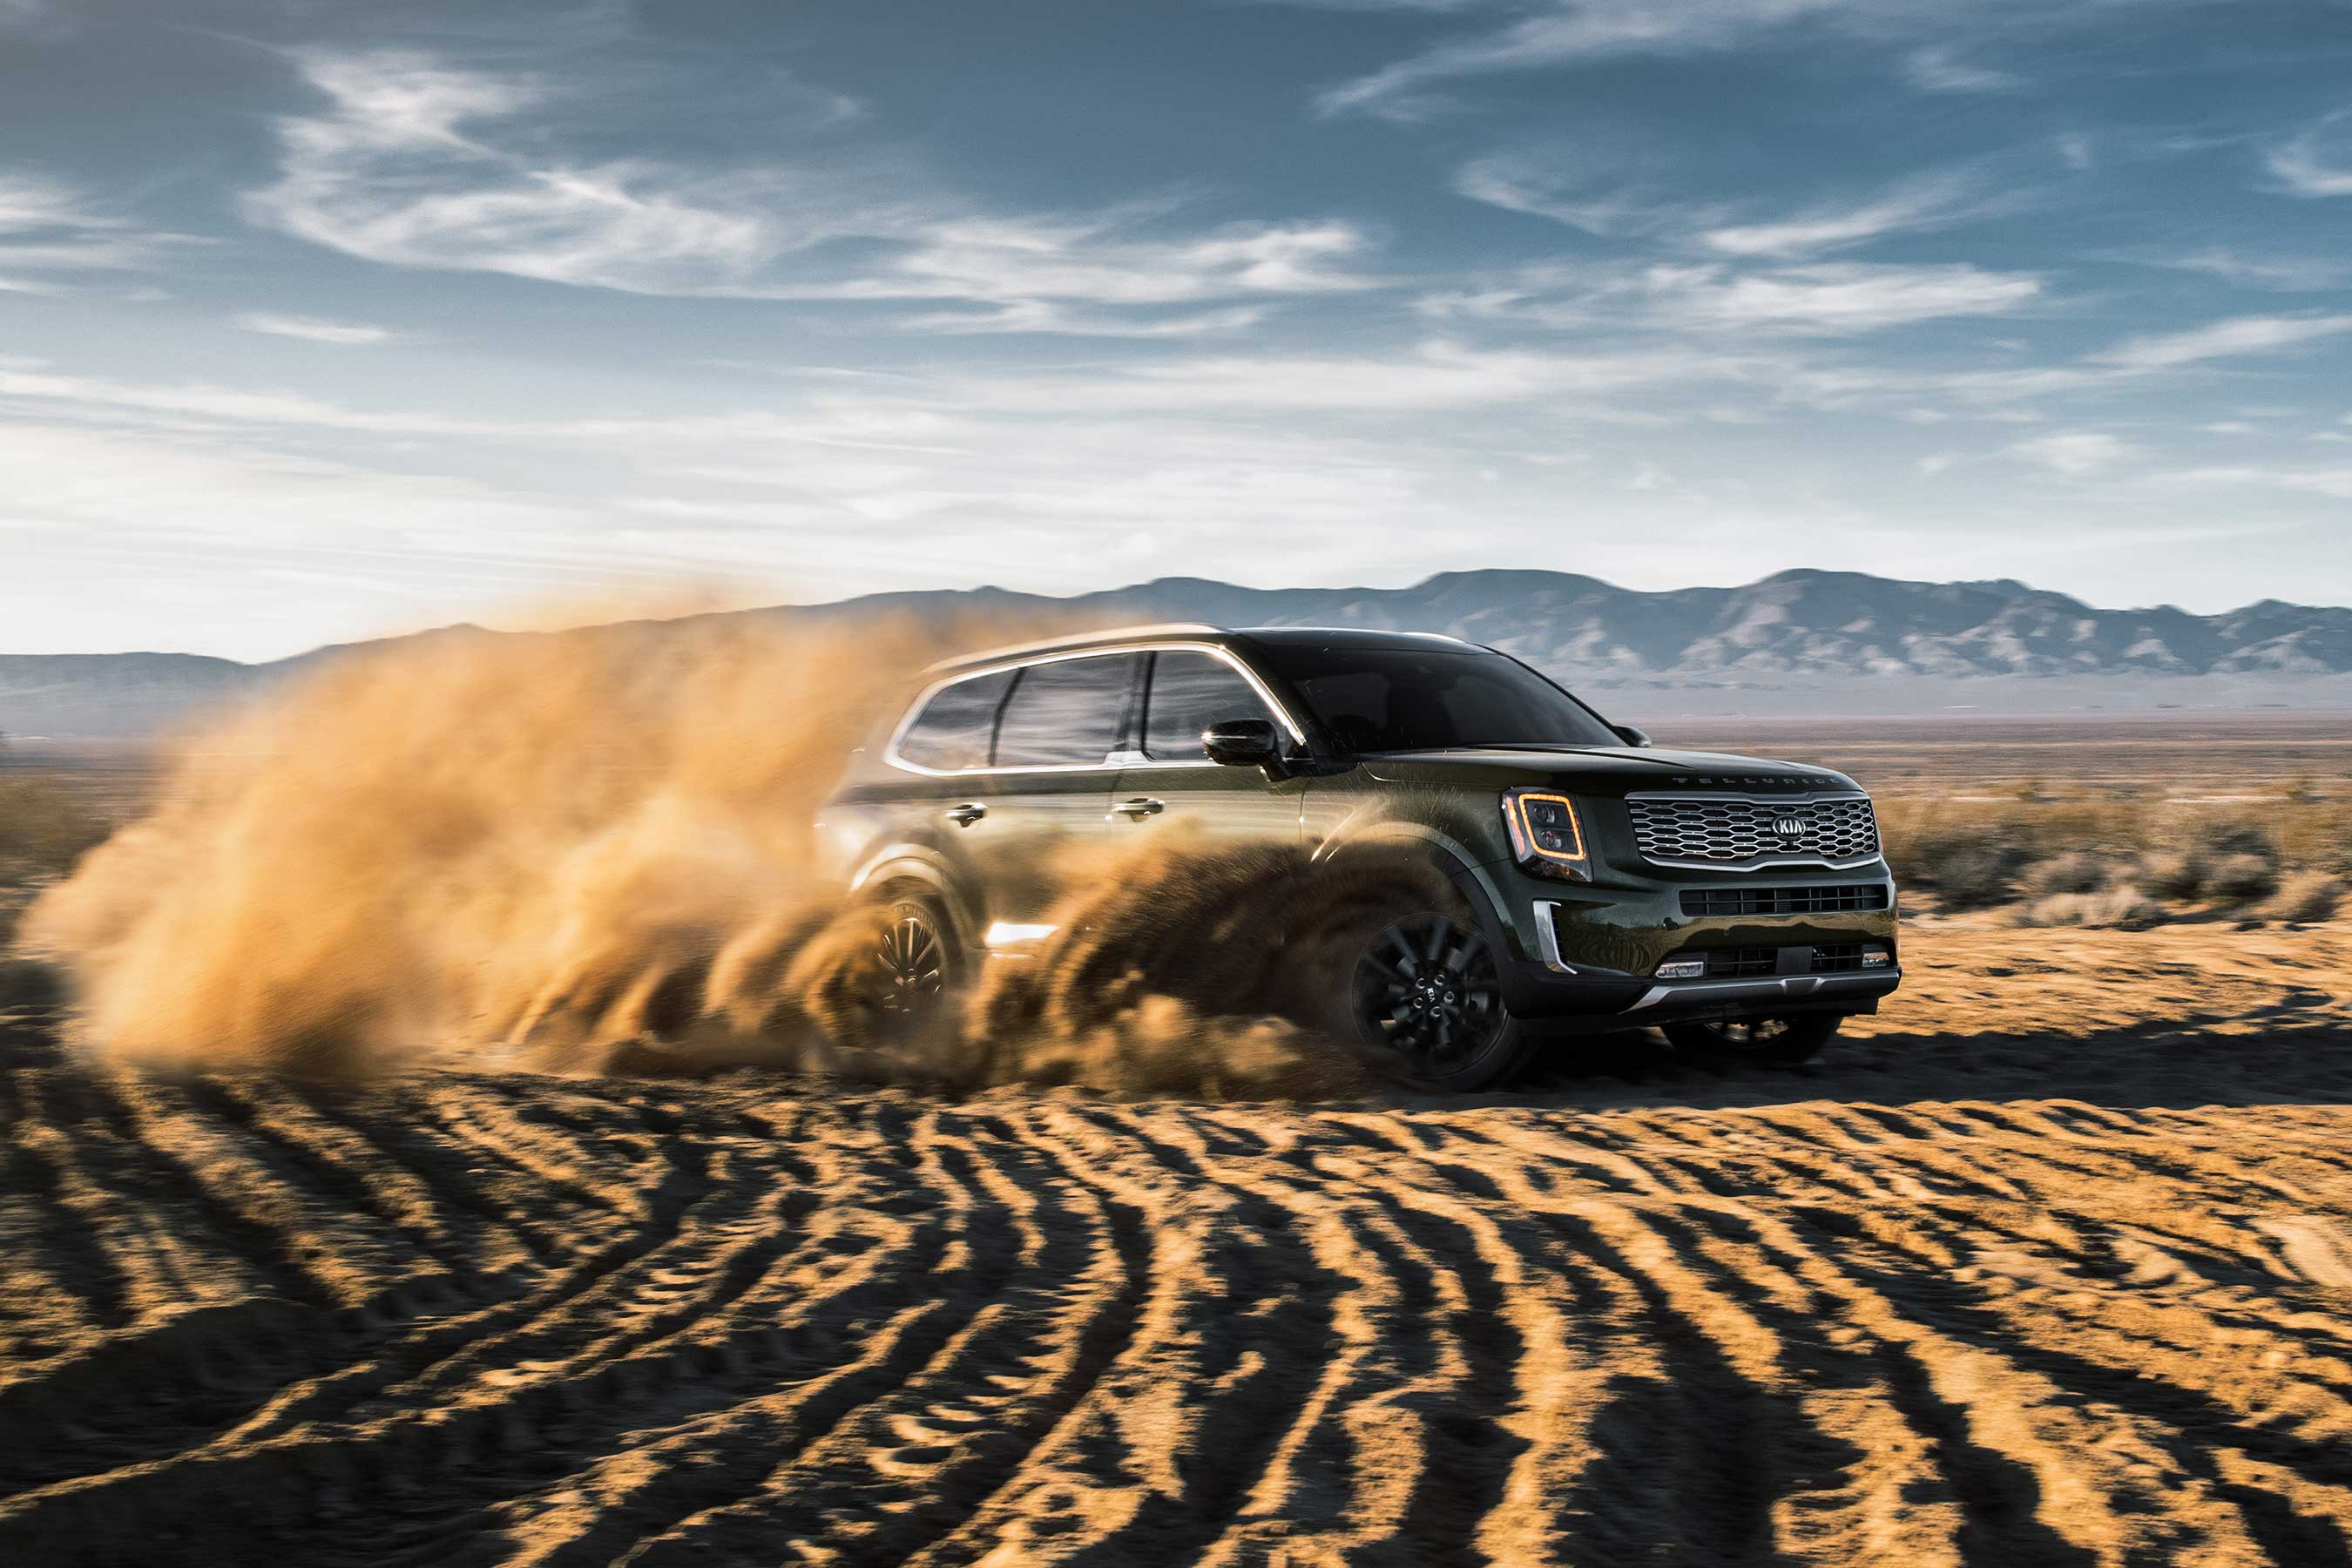 The all-new 2020 Kia Telluride is loaded with technology to enhance comfort, convenience, utility and the driver and passenger experience offering the potential for exploration and adventure every time it's on the road, or off.